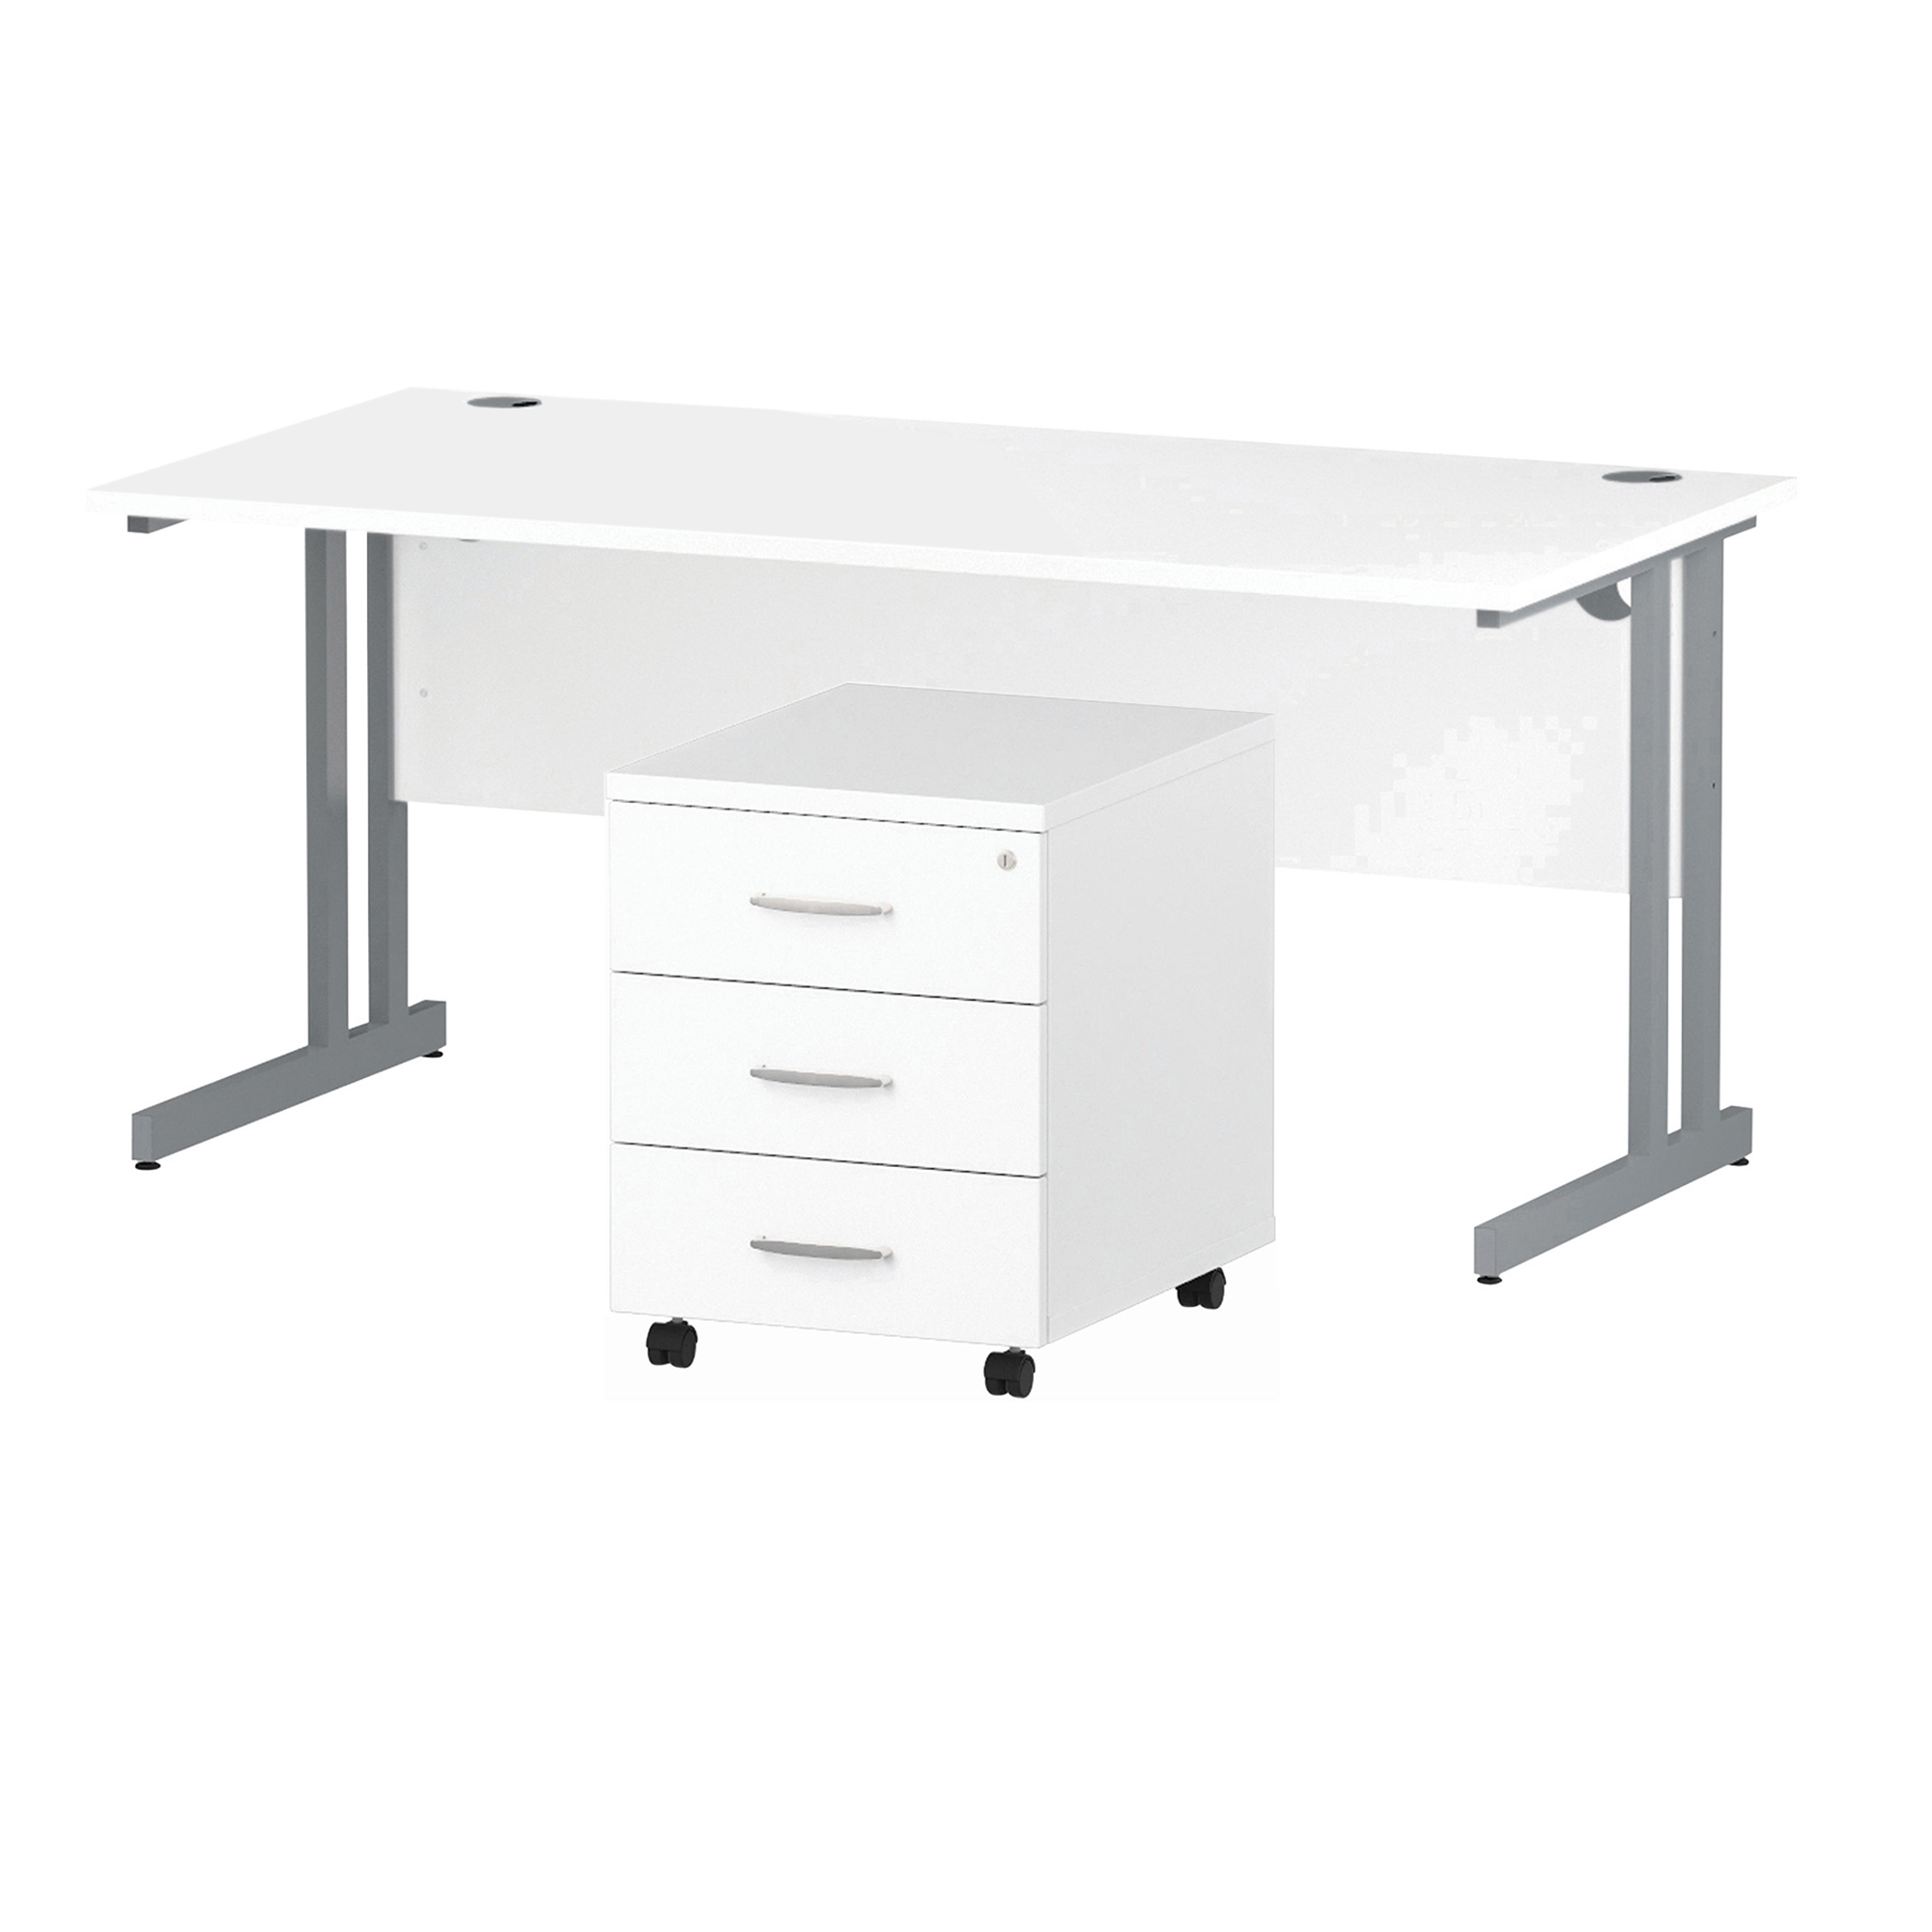 Desks Trexus Cantilever Desk 1600x800 & 3 Drawer Pedestal White Bundle Offer Feb-Apr 2020